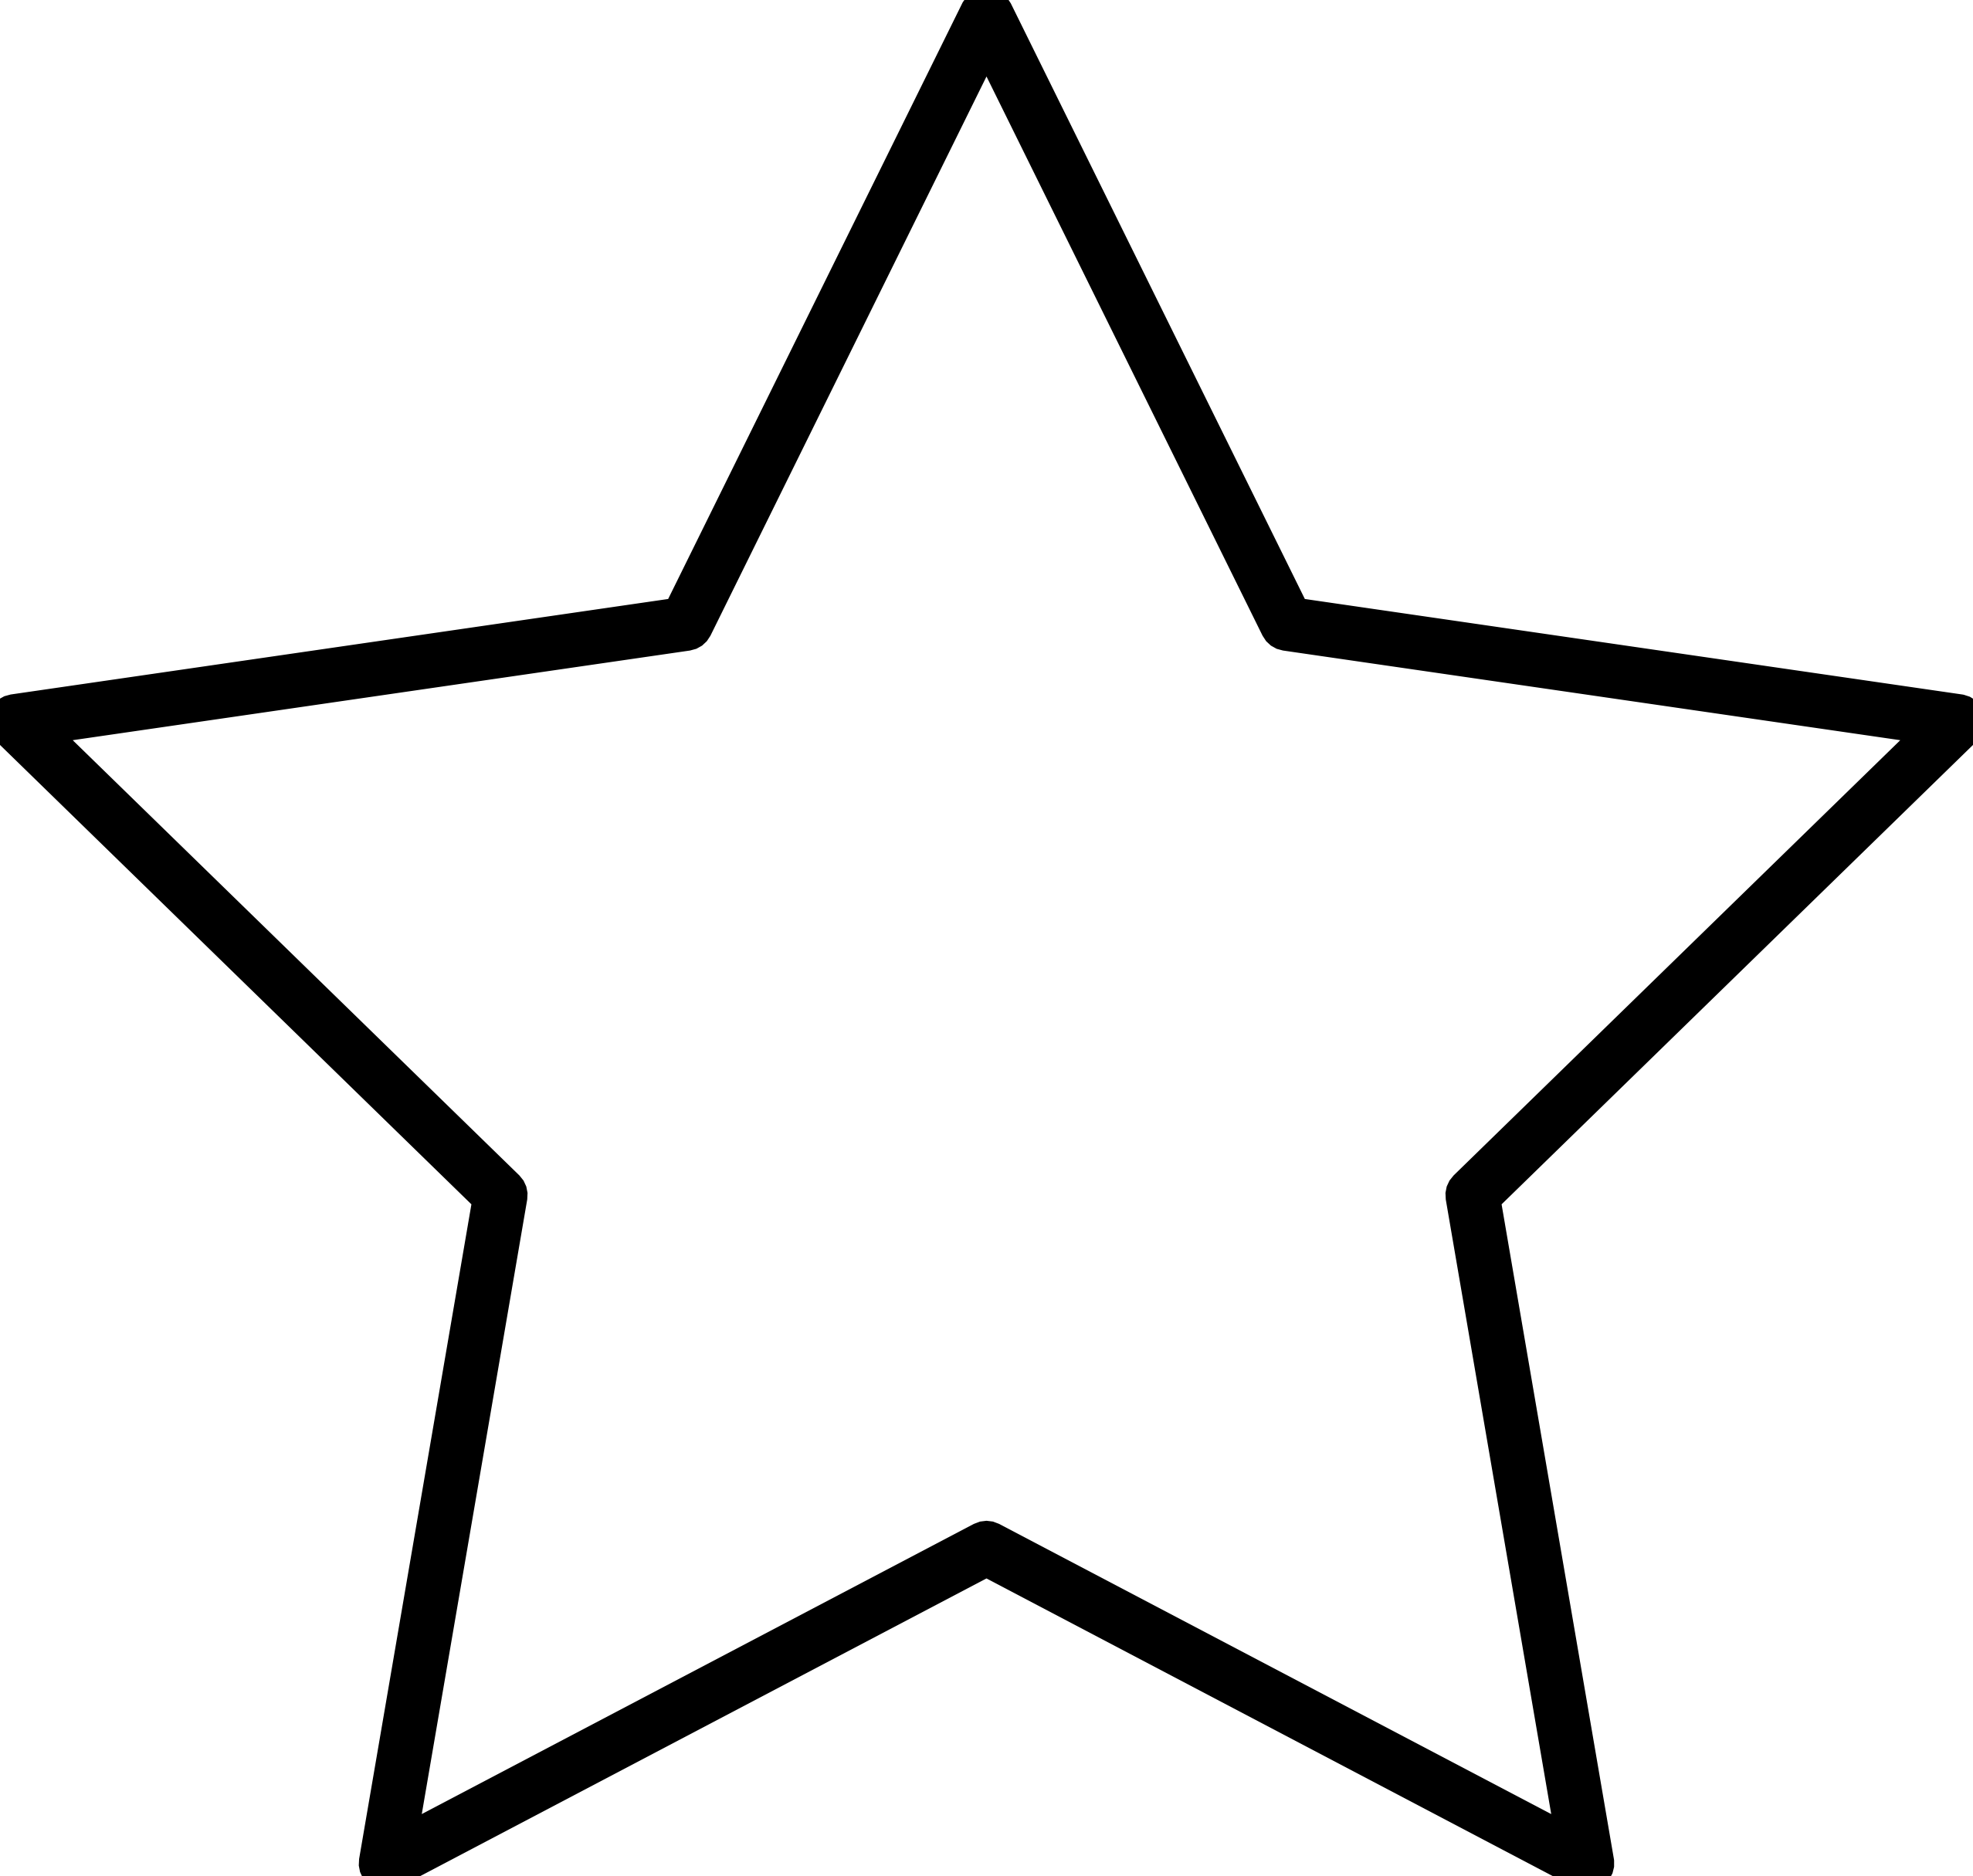 Star of bethlehem clipart black and white clipart free library Star Of David Silhouette at GetDrawings.com | Free for personal use ... clipart free library